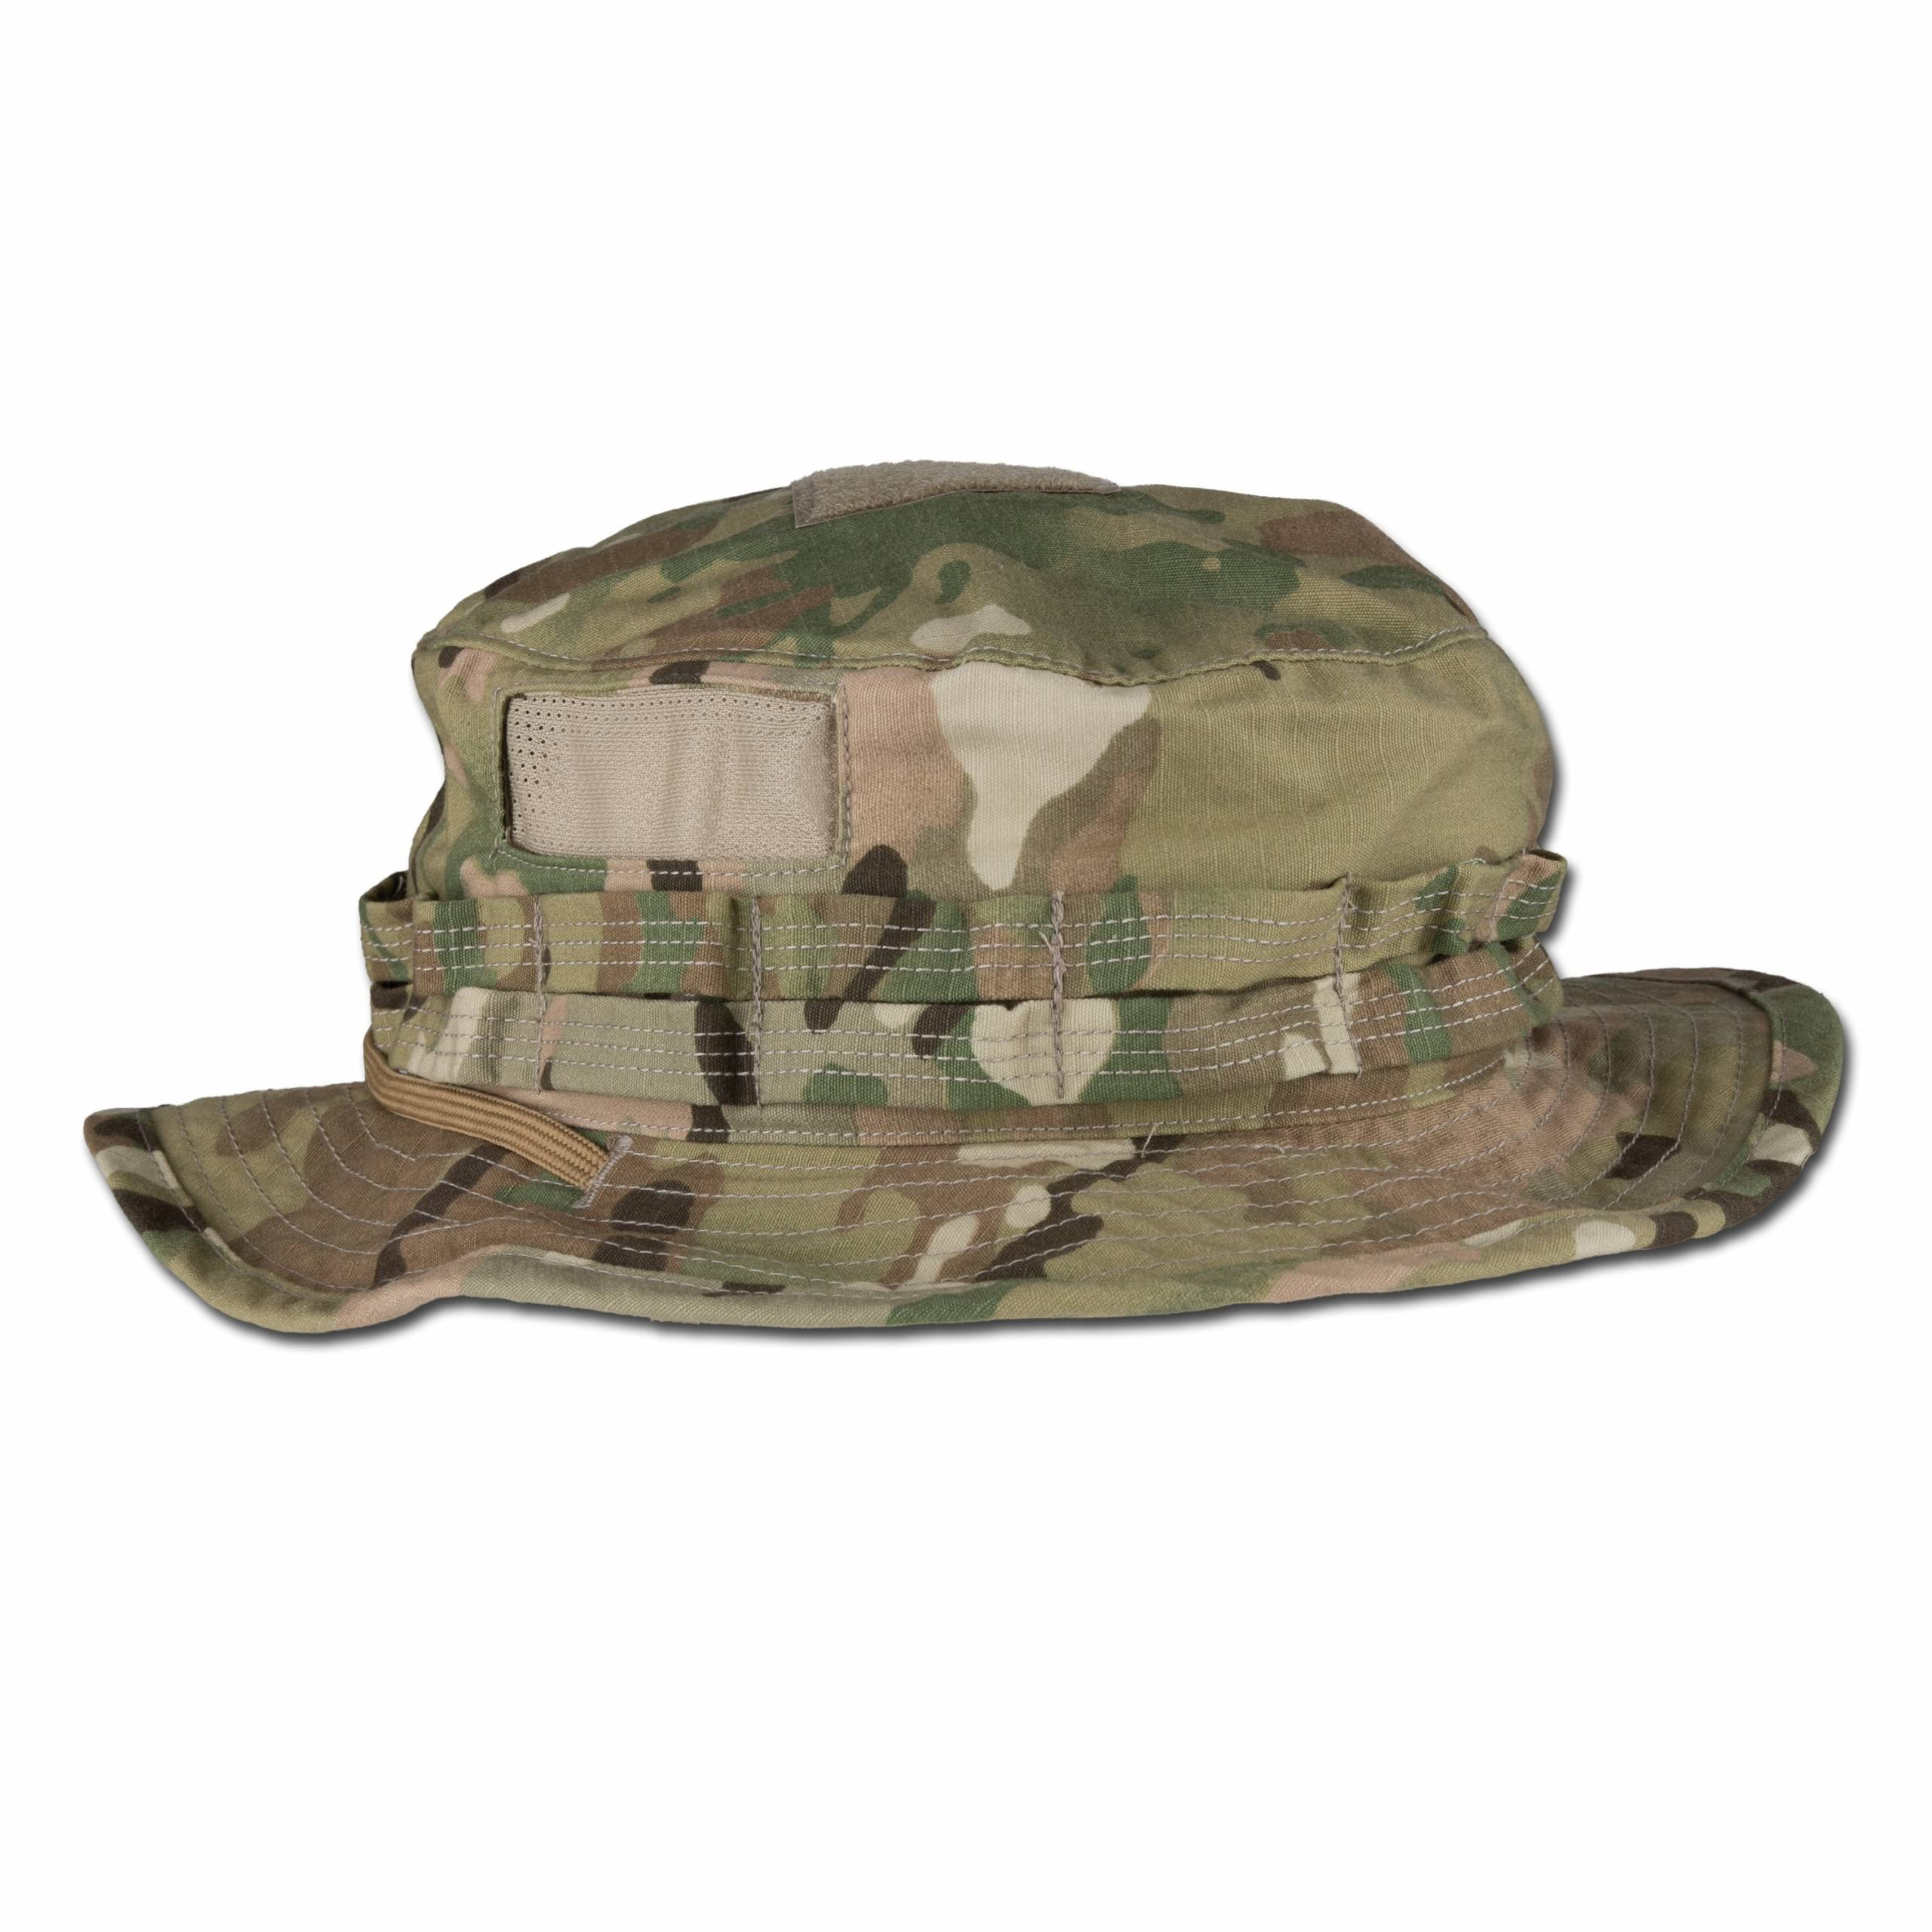 Blackhawk Advanced Boonie Multicam kaufen bei ASMC 5b7599f5e41